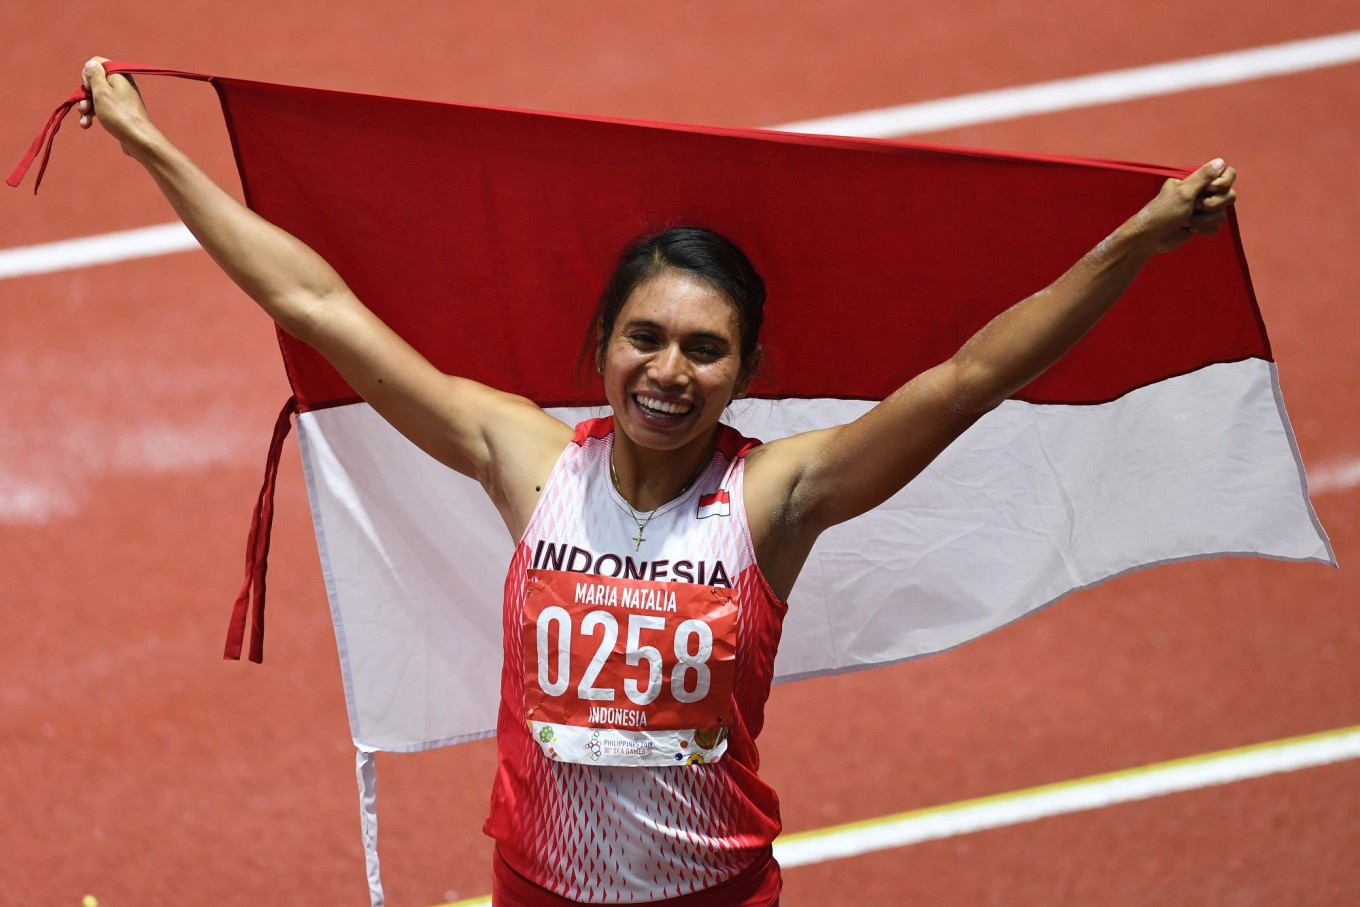 SEA Games: Indonesian Maria Londa considers retiring after almost 20 years of competing